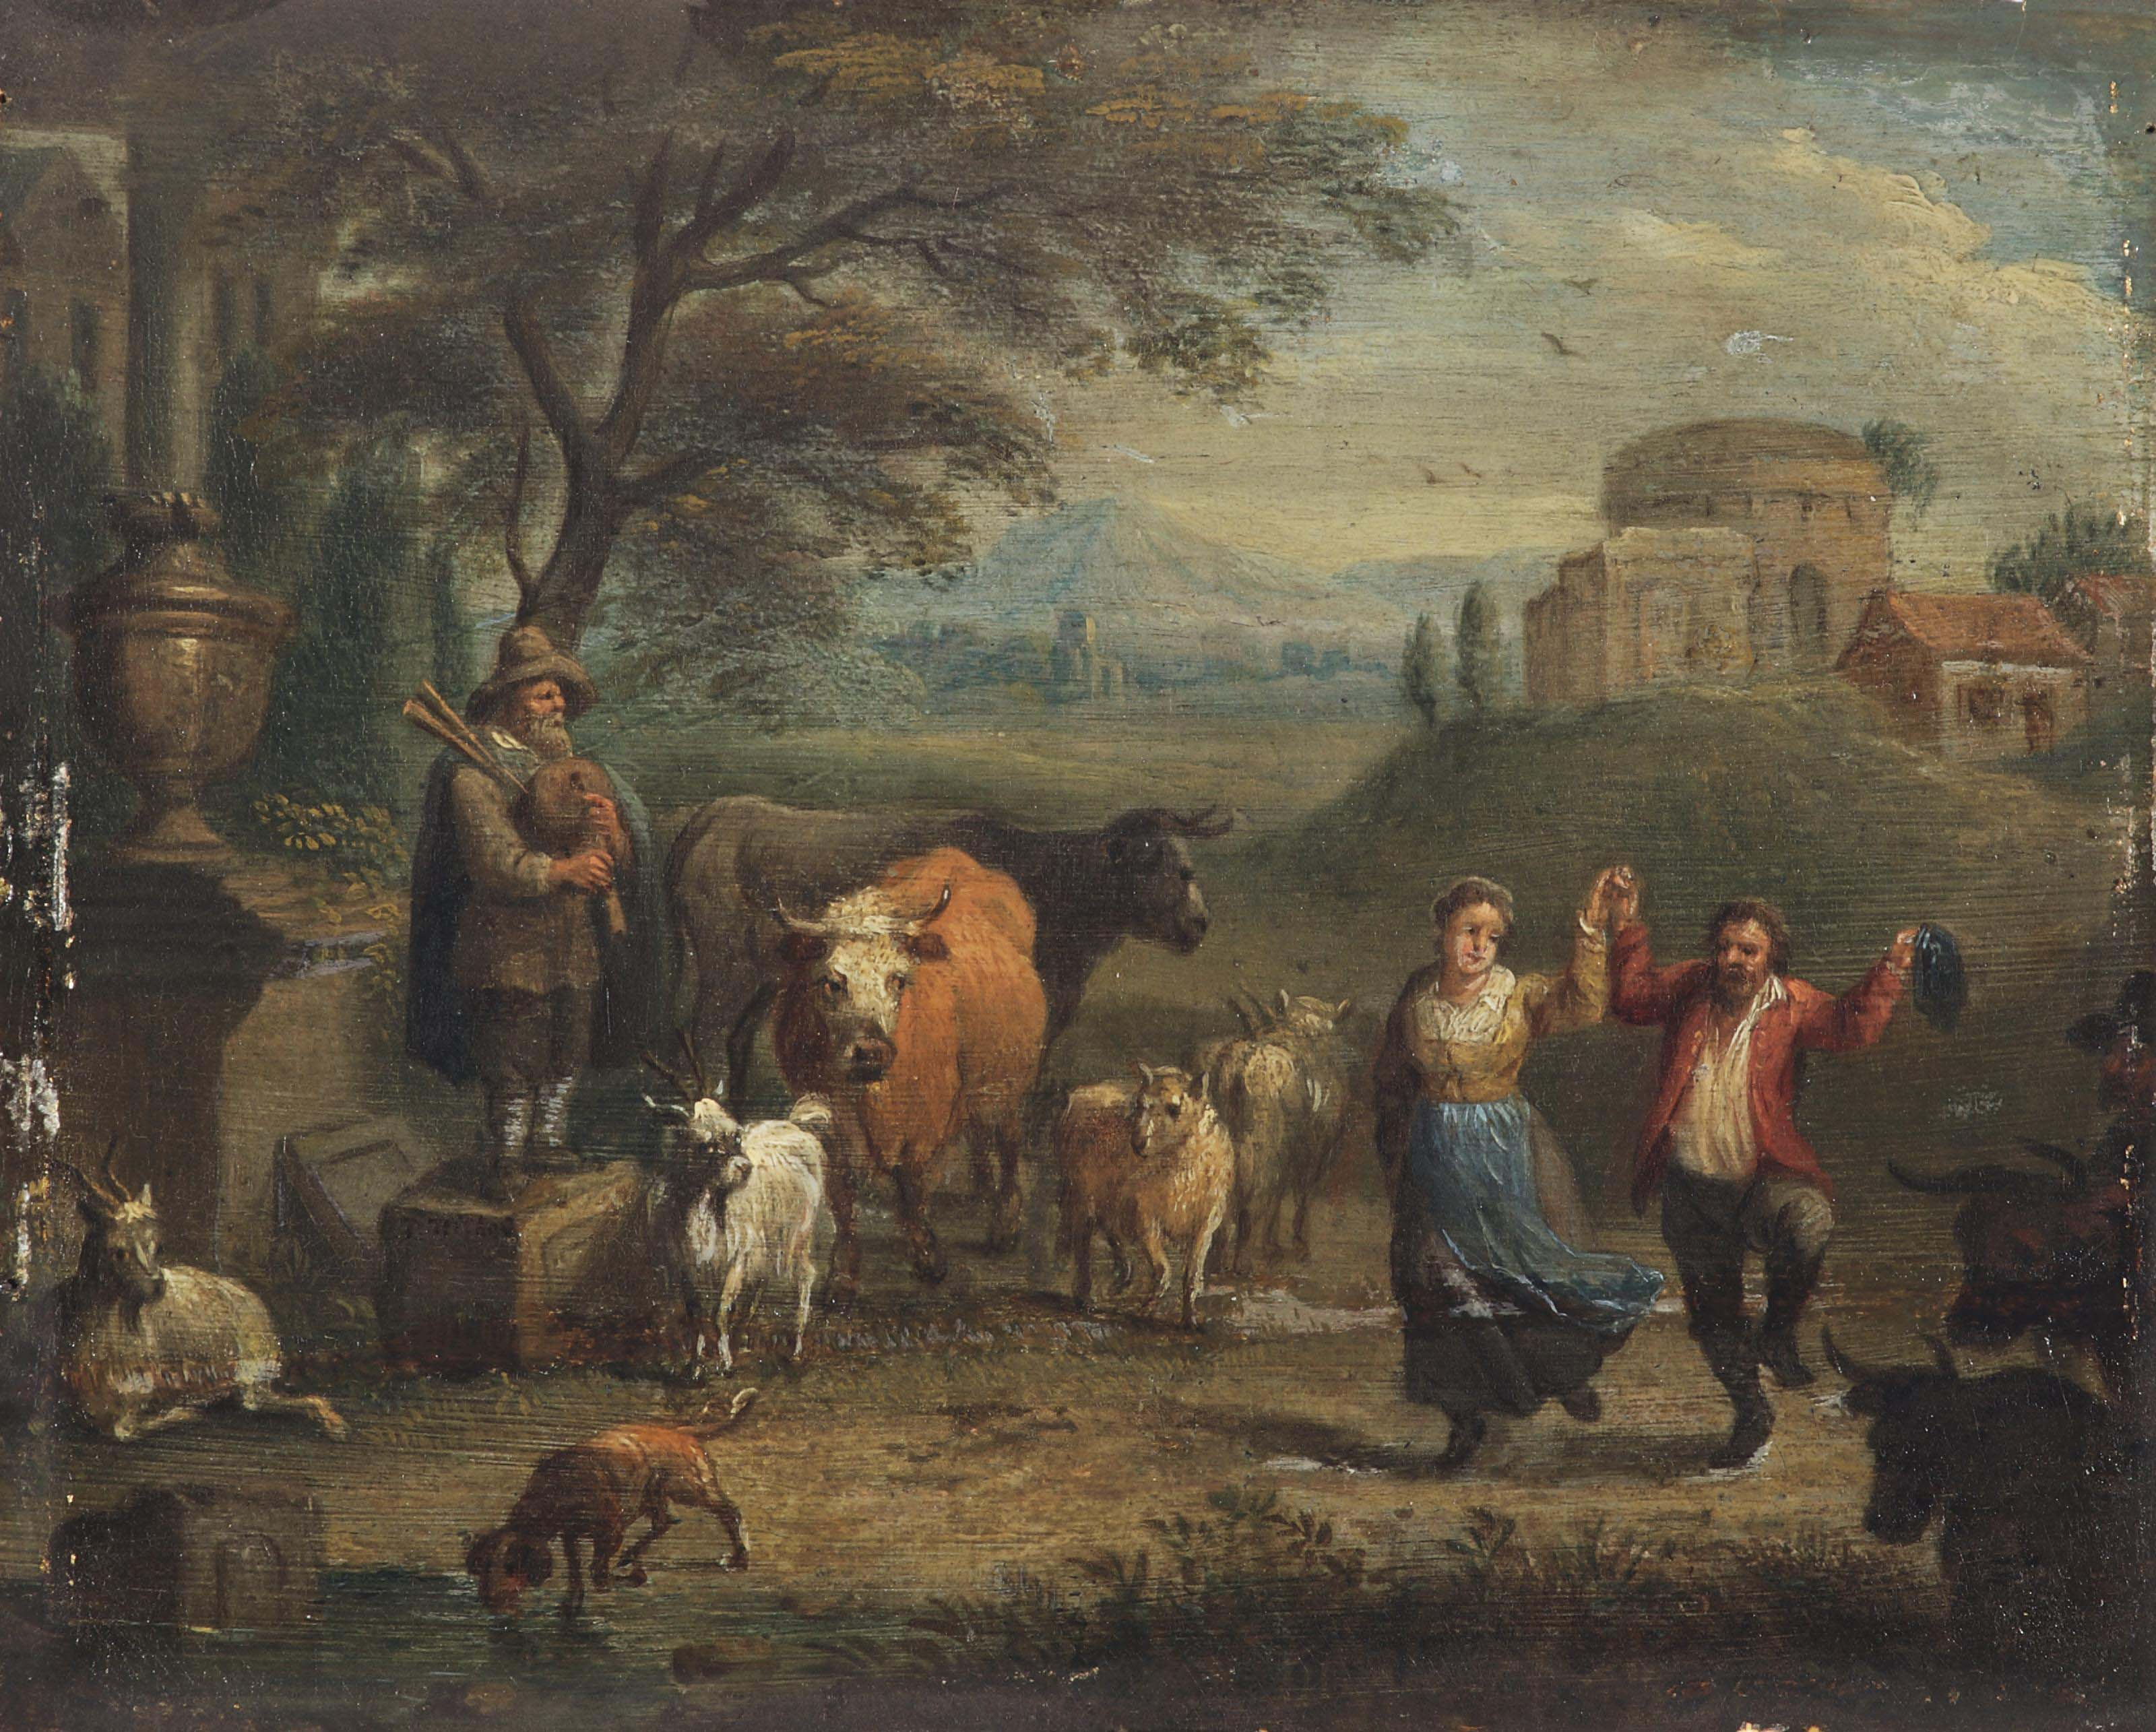 A landscape with a dancing peasant couple and cattle, classical ruins beyond